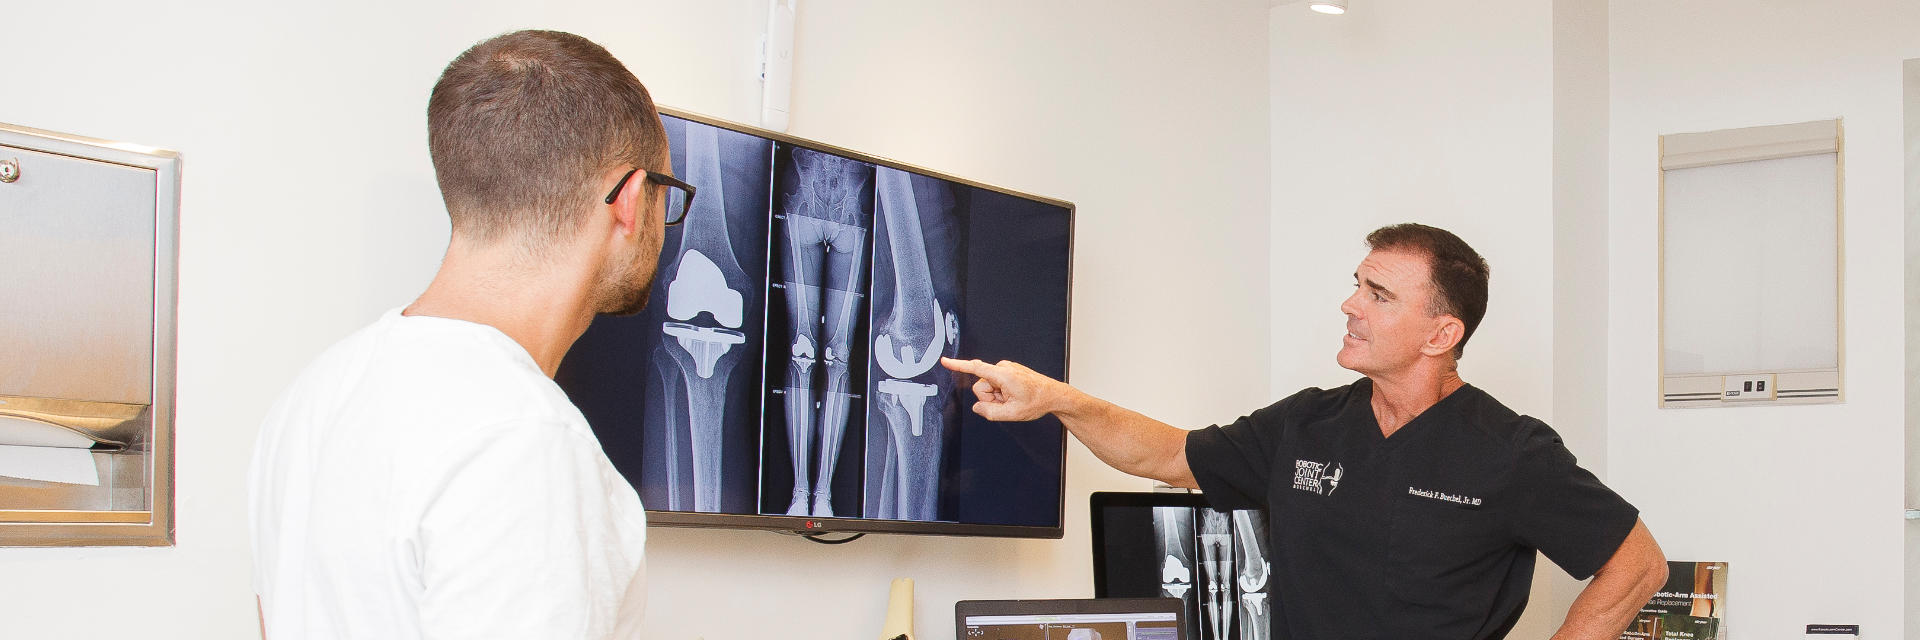 Dr. Buechel reviewing post-operative x-rays of his knee replacement patient.